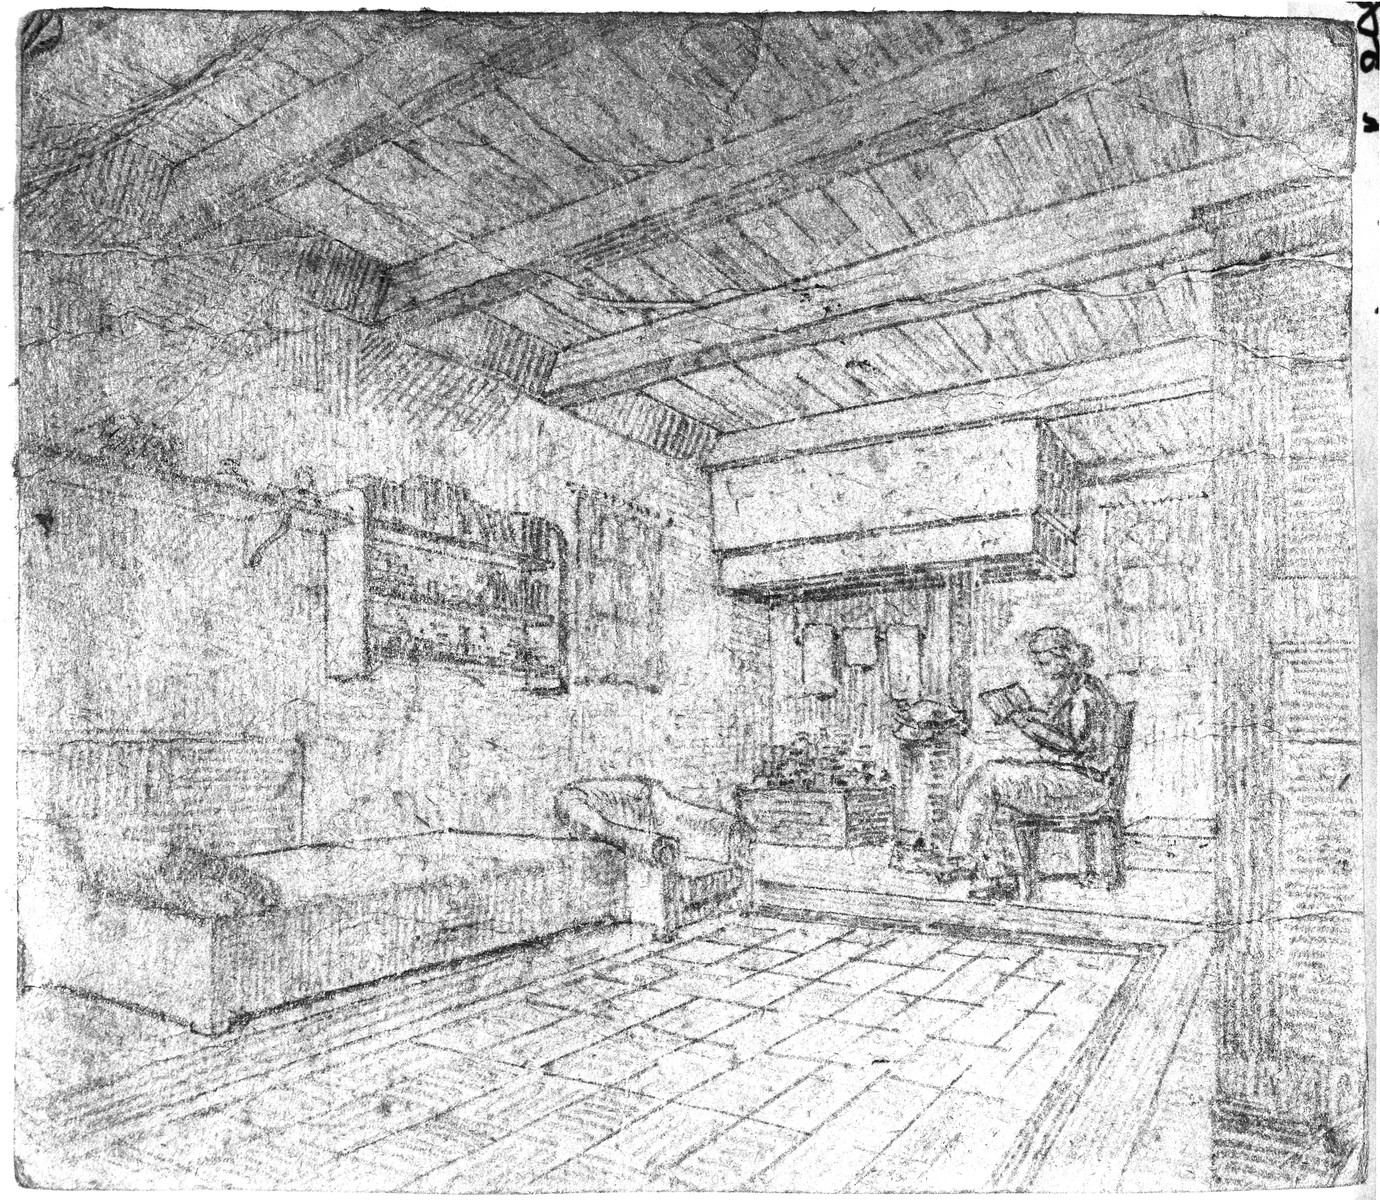 Drawing made by Richard Bloch of the room where he and his wife were hiding in Nunspeet, Holland.  The room was an old bakehouse adjacent to the home of the Alblas family.